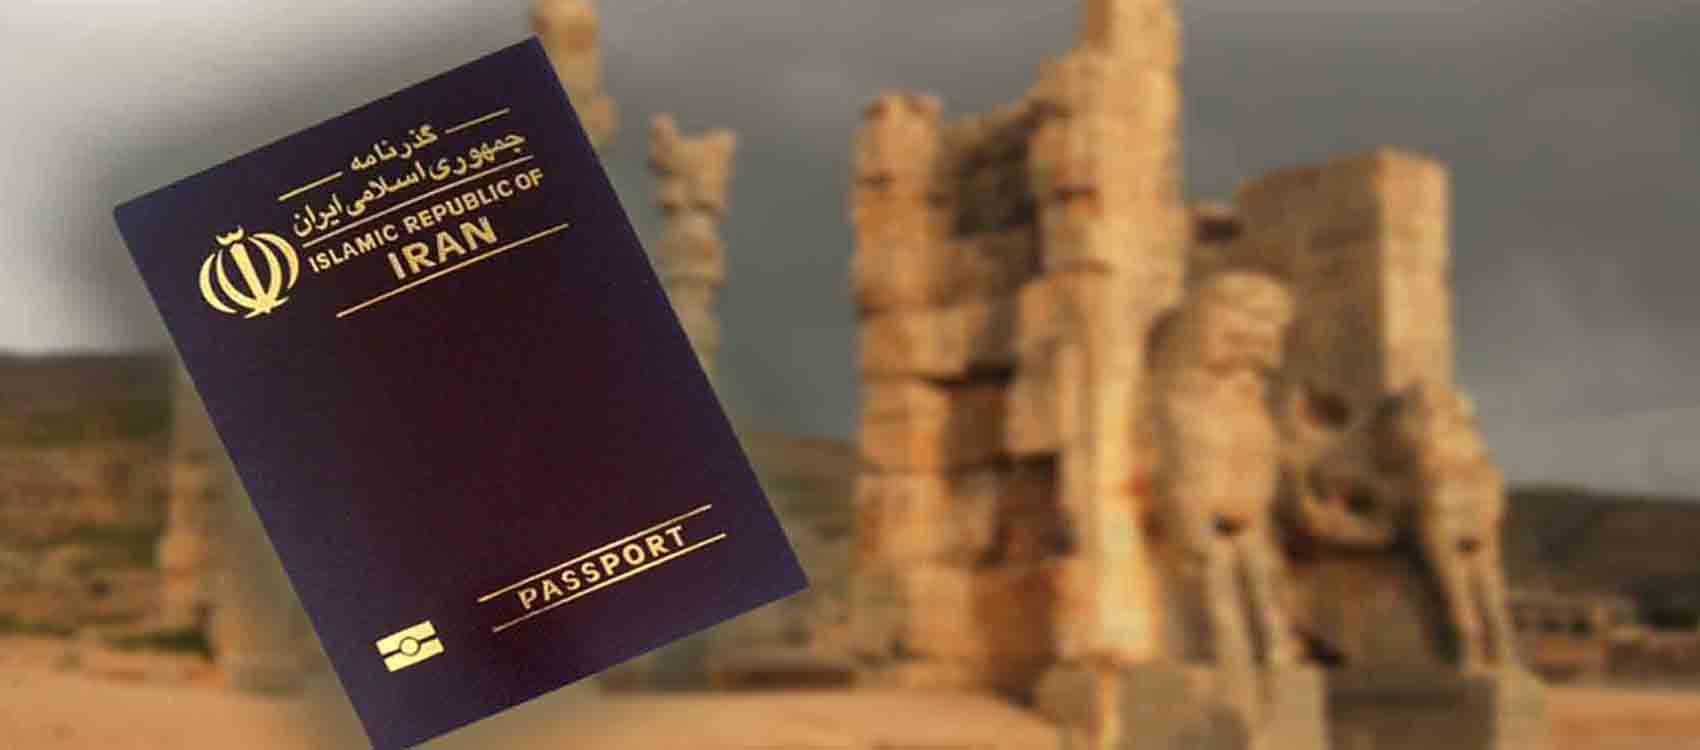 Iran Visa Application Form,All about Iran visa,traveling 2 Persia